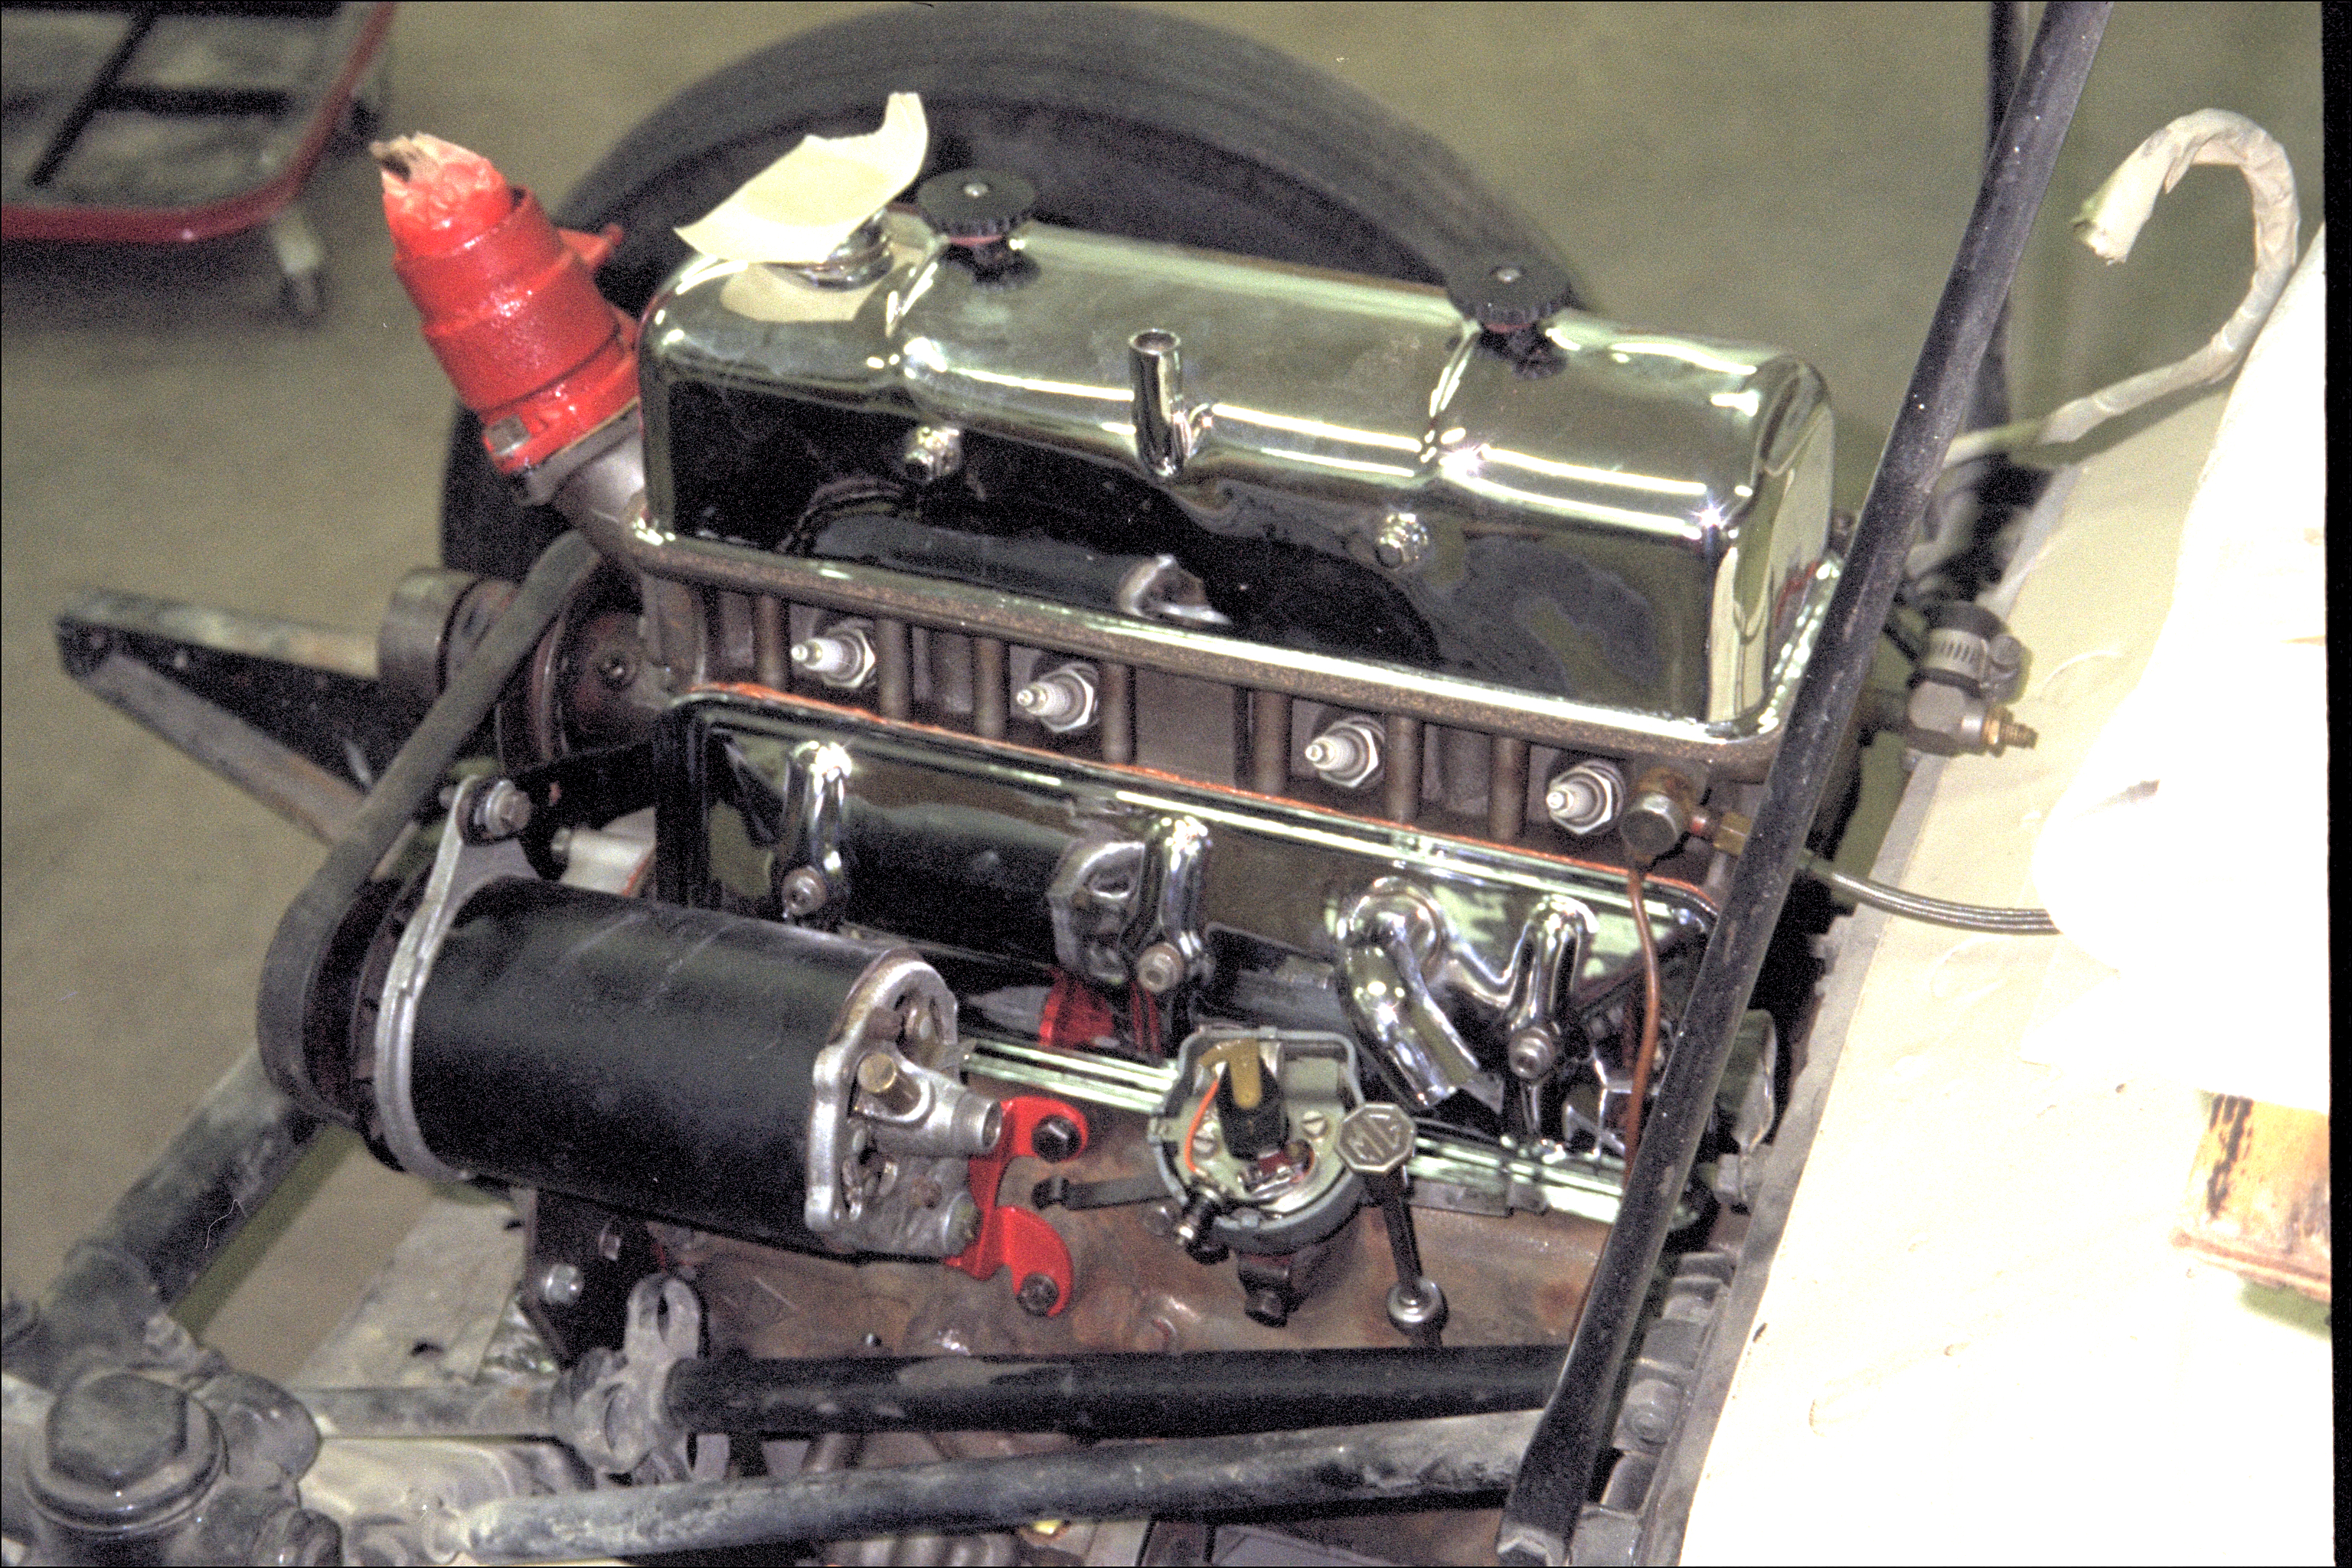 Engine connected to transmission